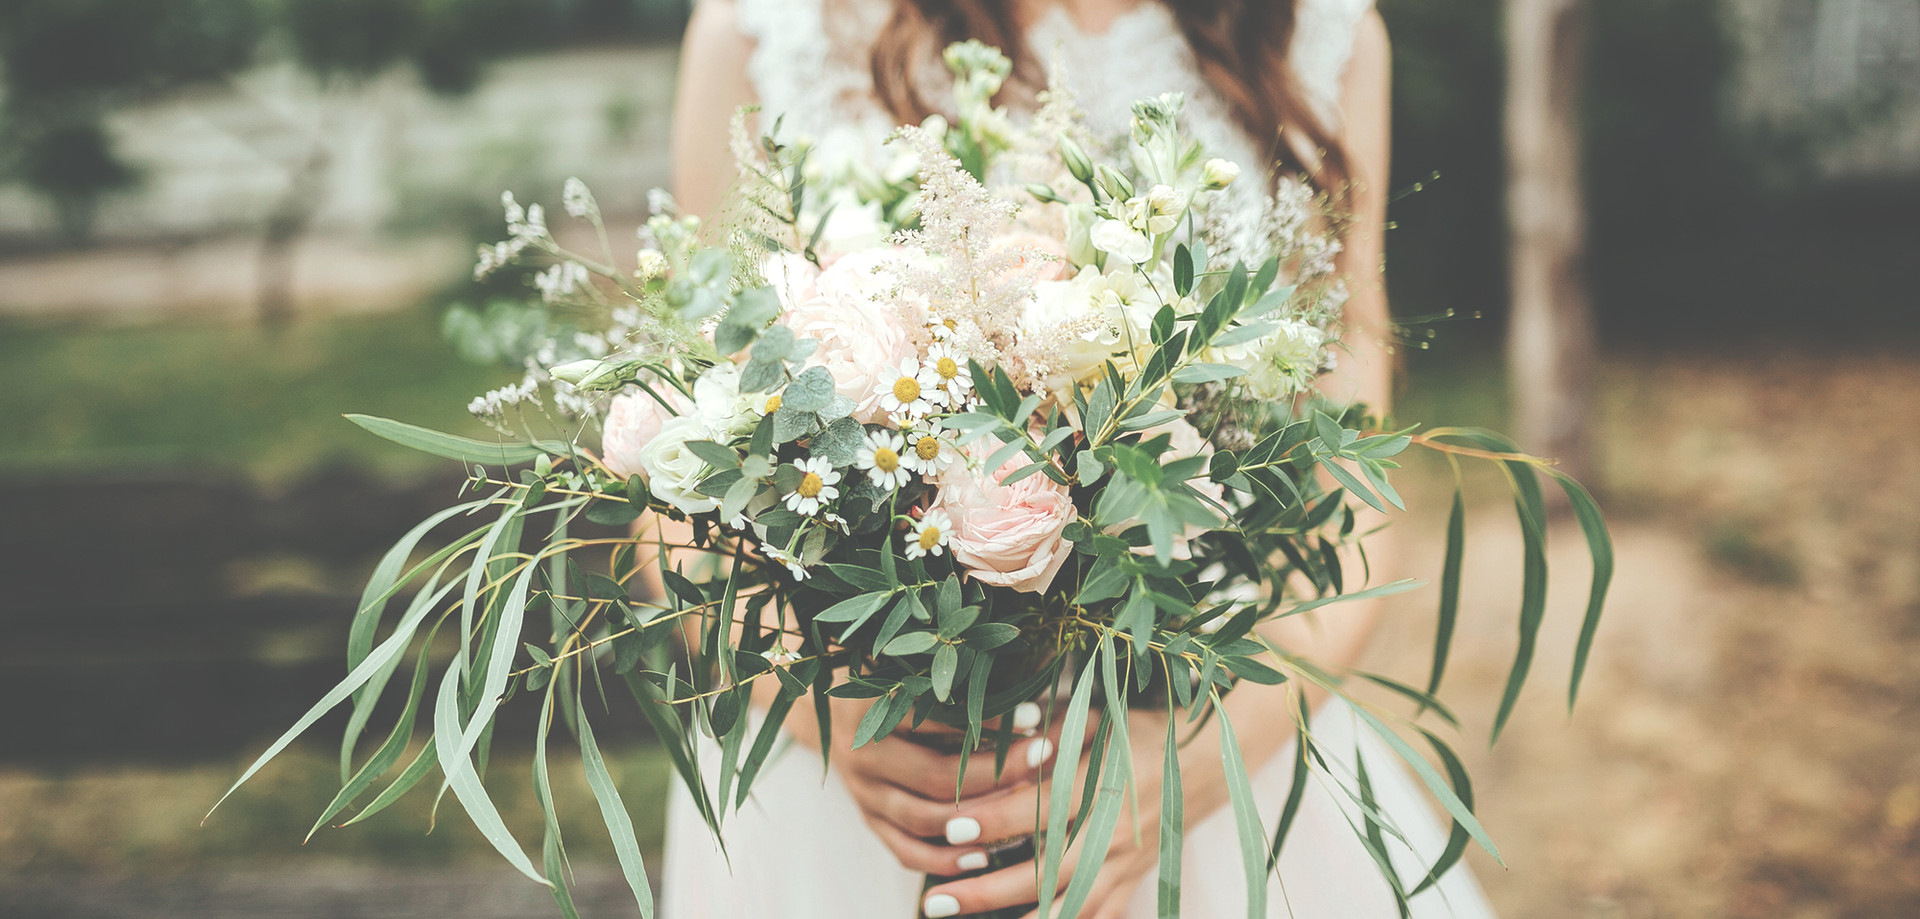 It's all about the bouquet